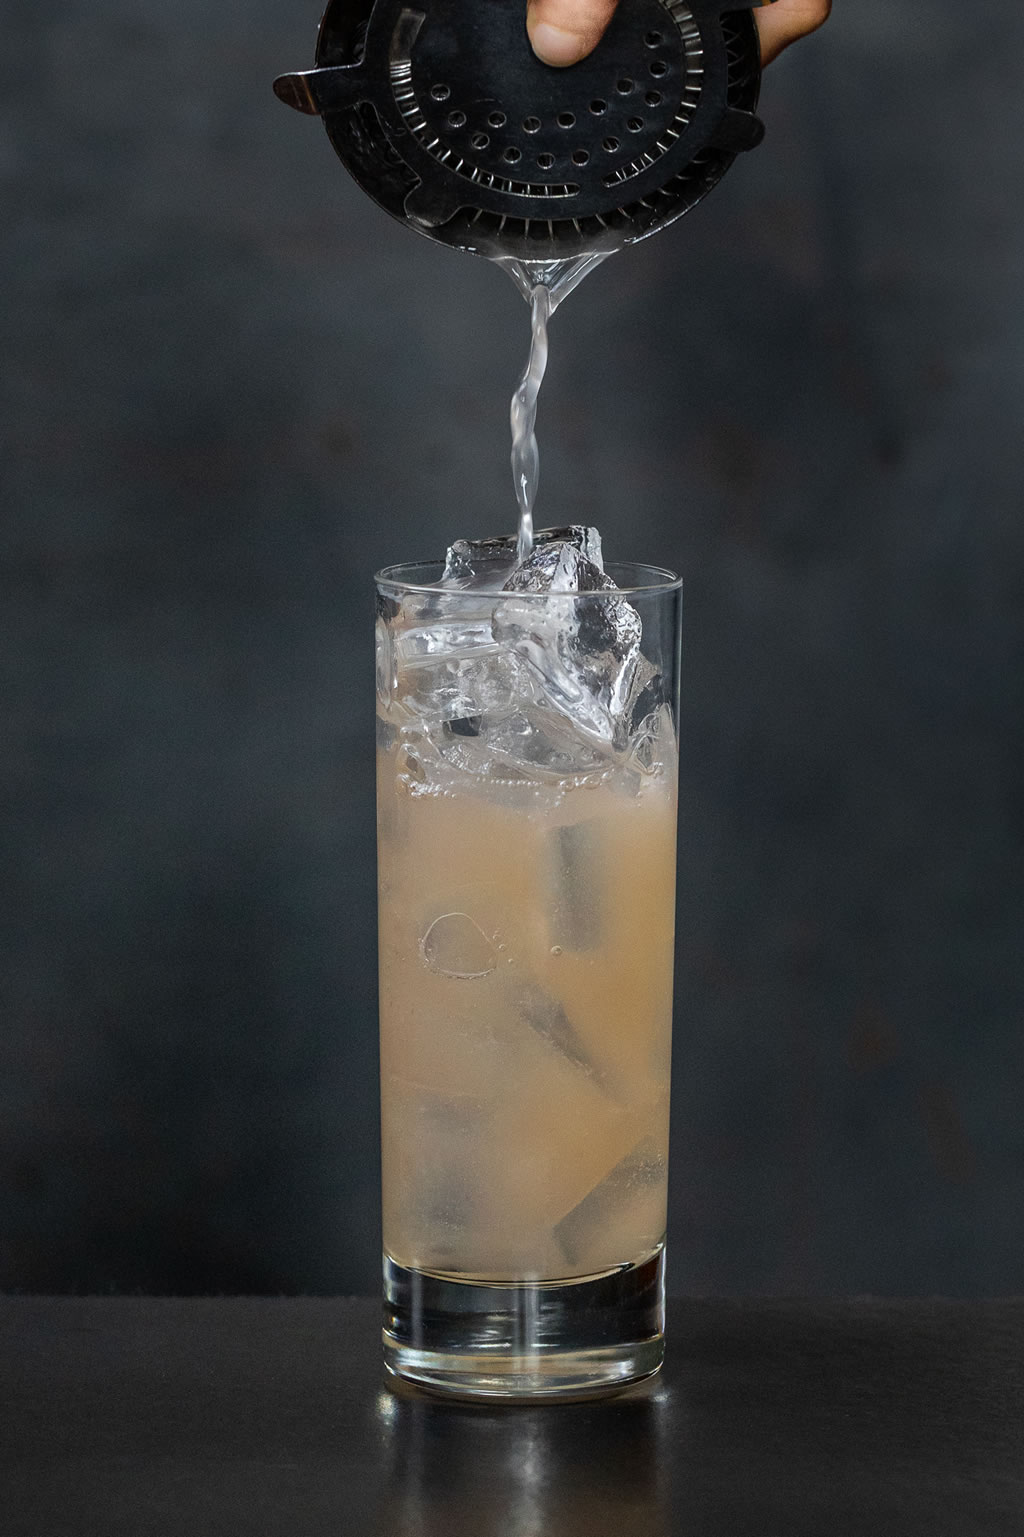 09-2019_OTOTO_Cocktail_Final Images_Web-Res_07